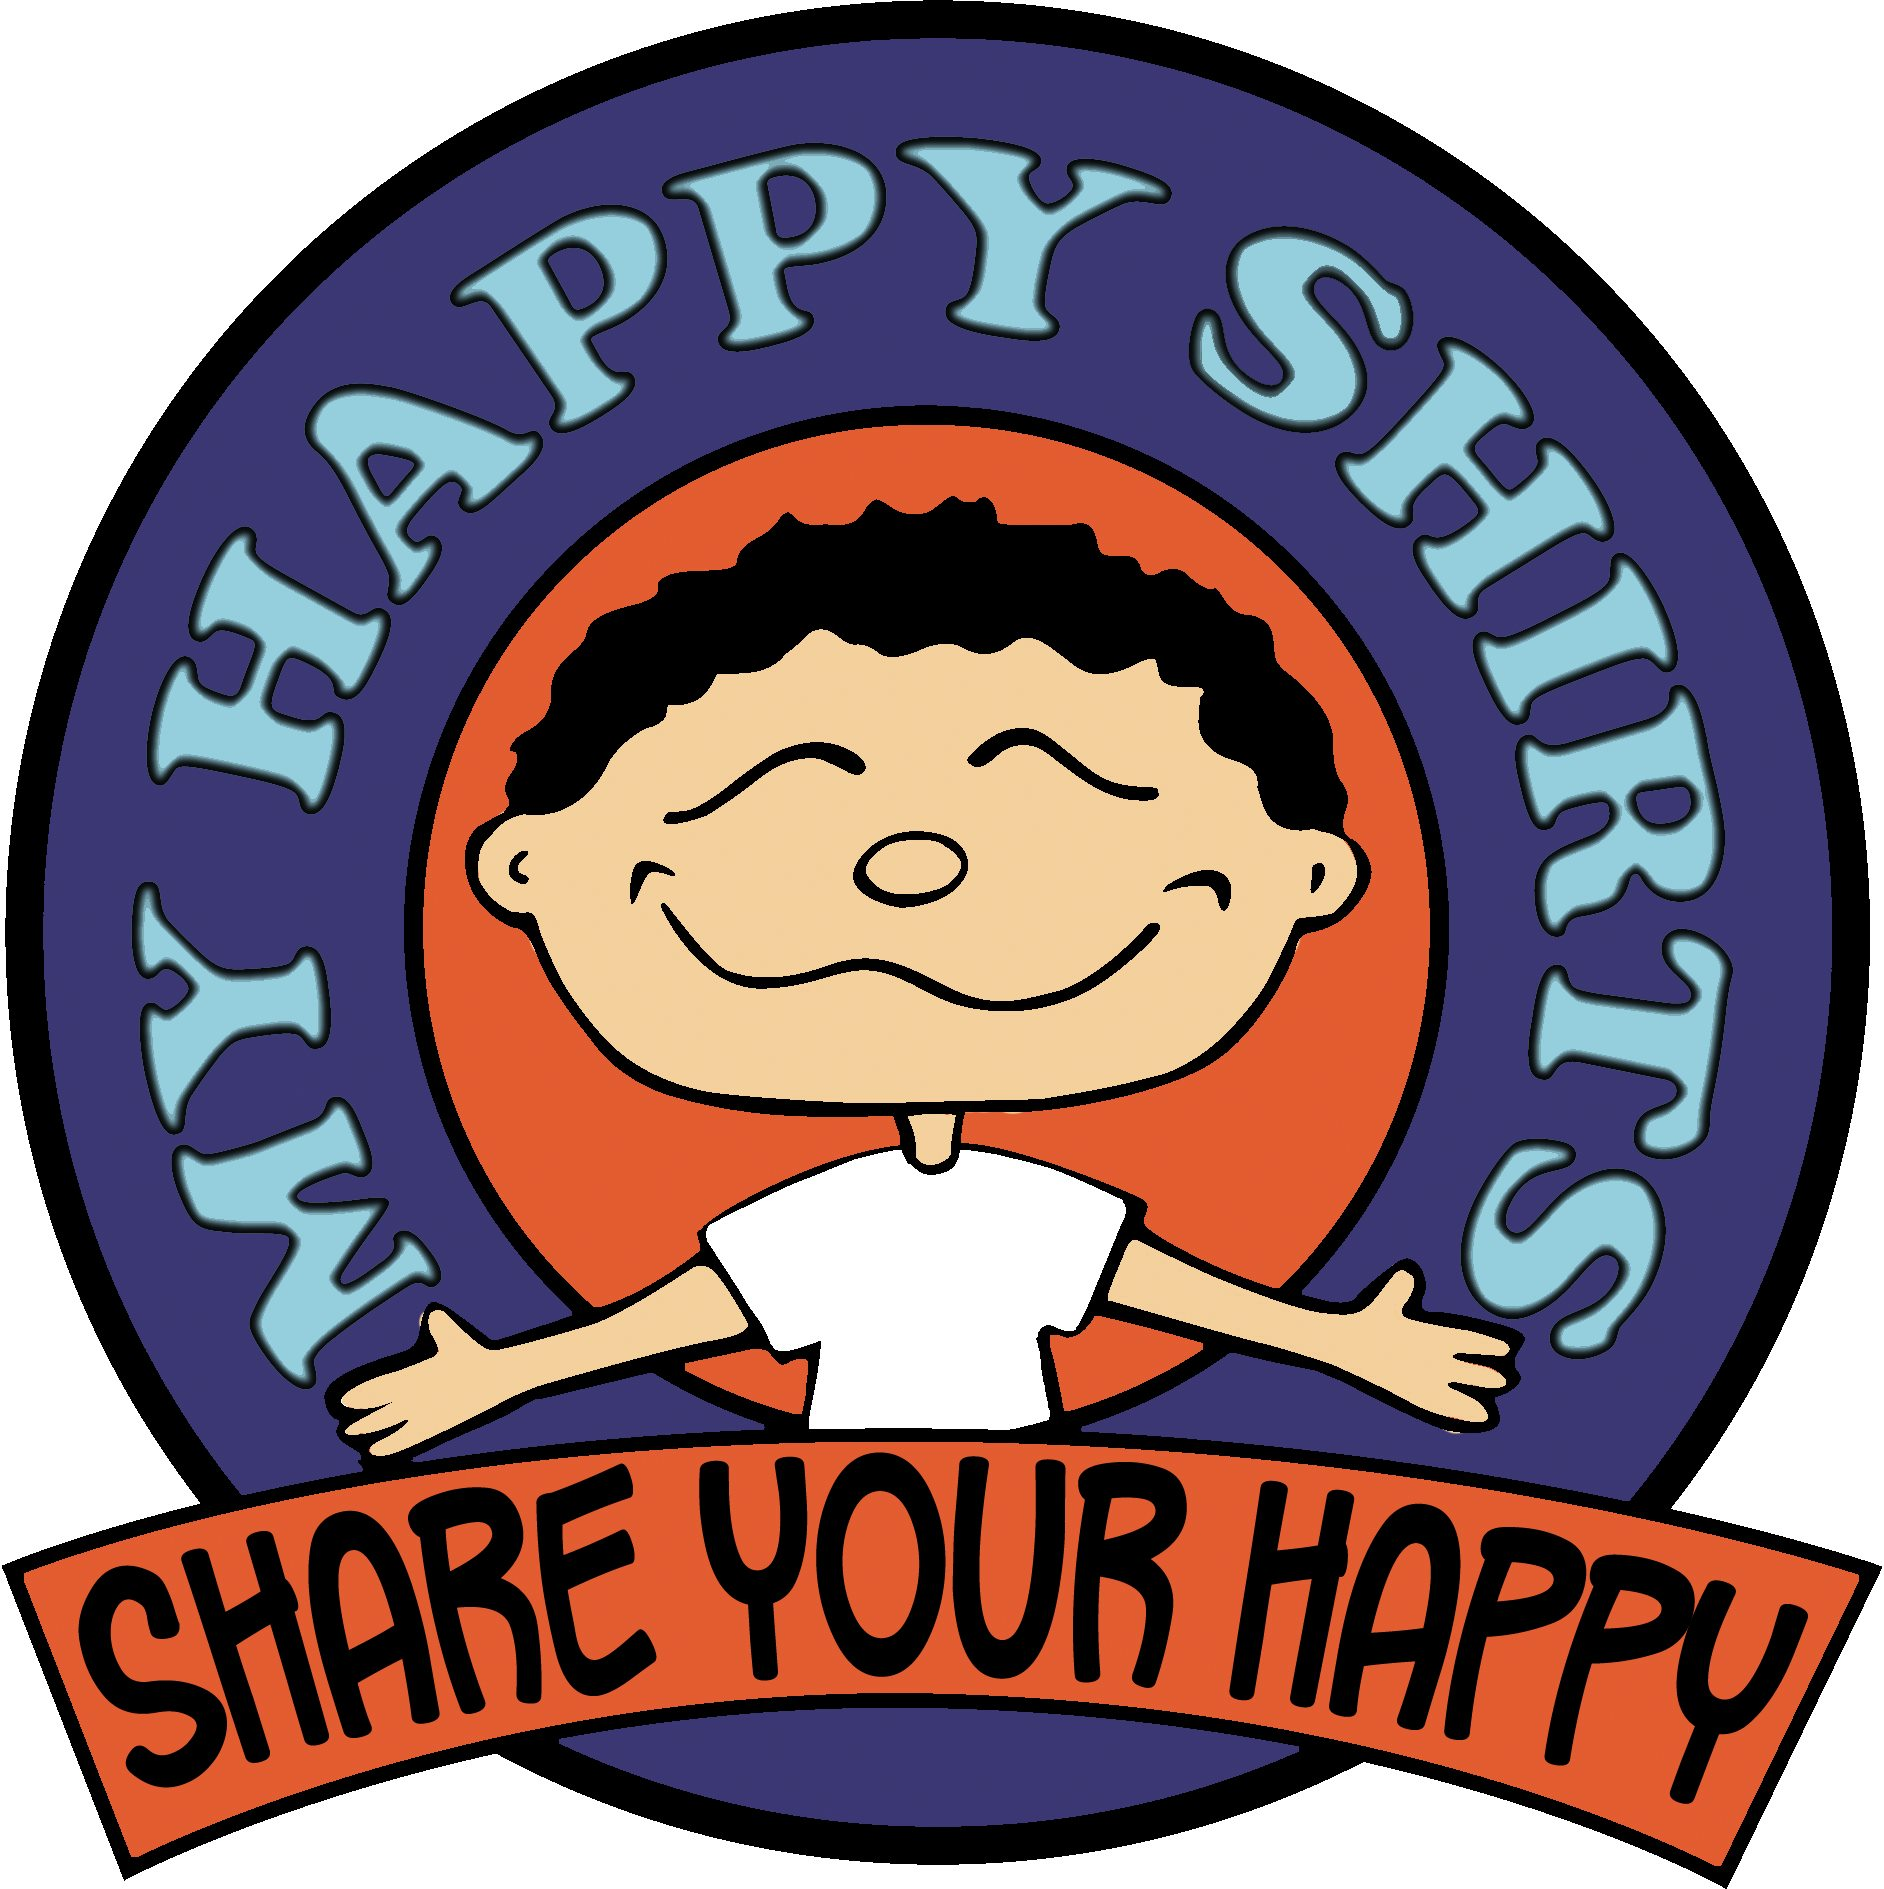 My Happy Shirts Logo